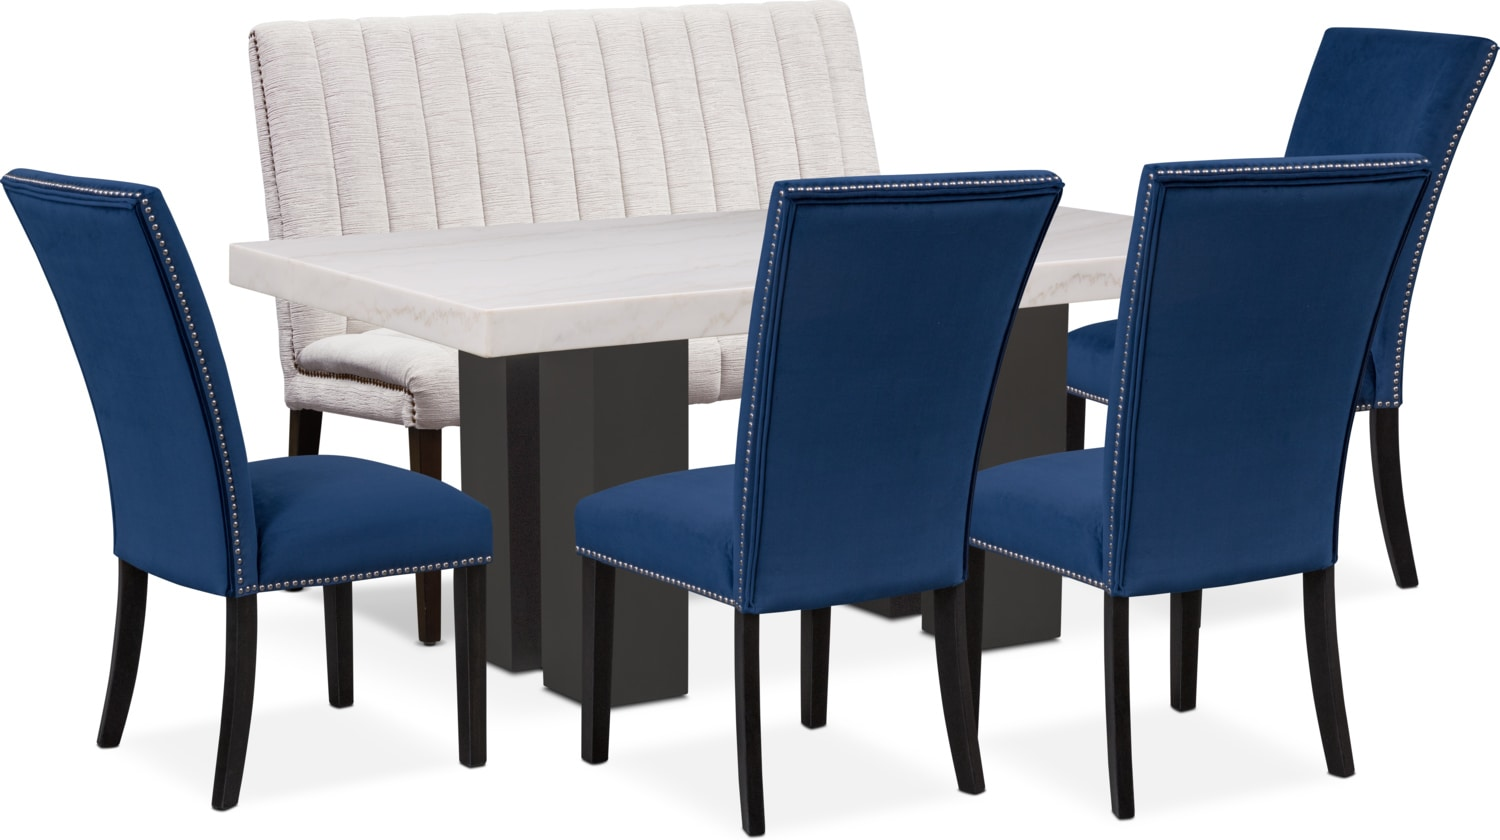 Artemis Marble Dining Table, 4 Upholstered Dining Chairs, and Bench